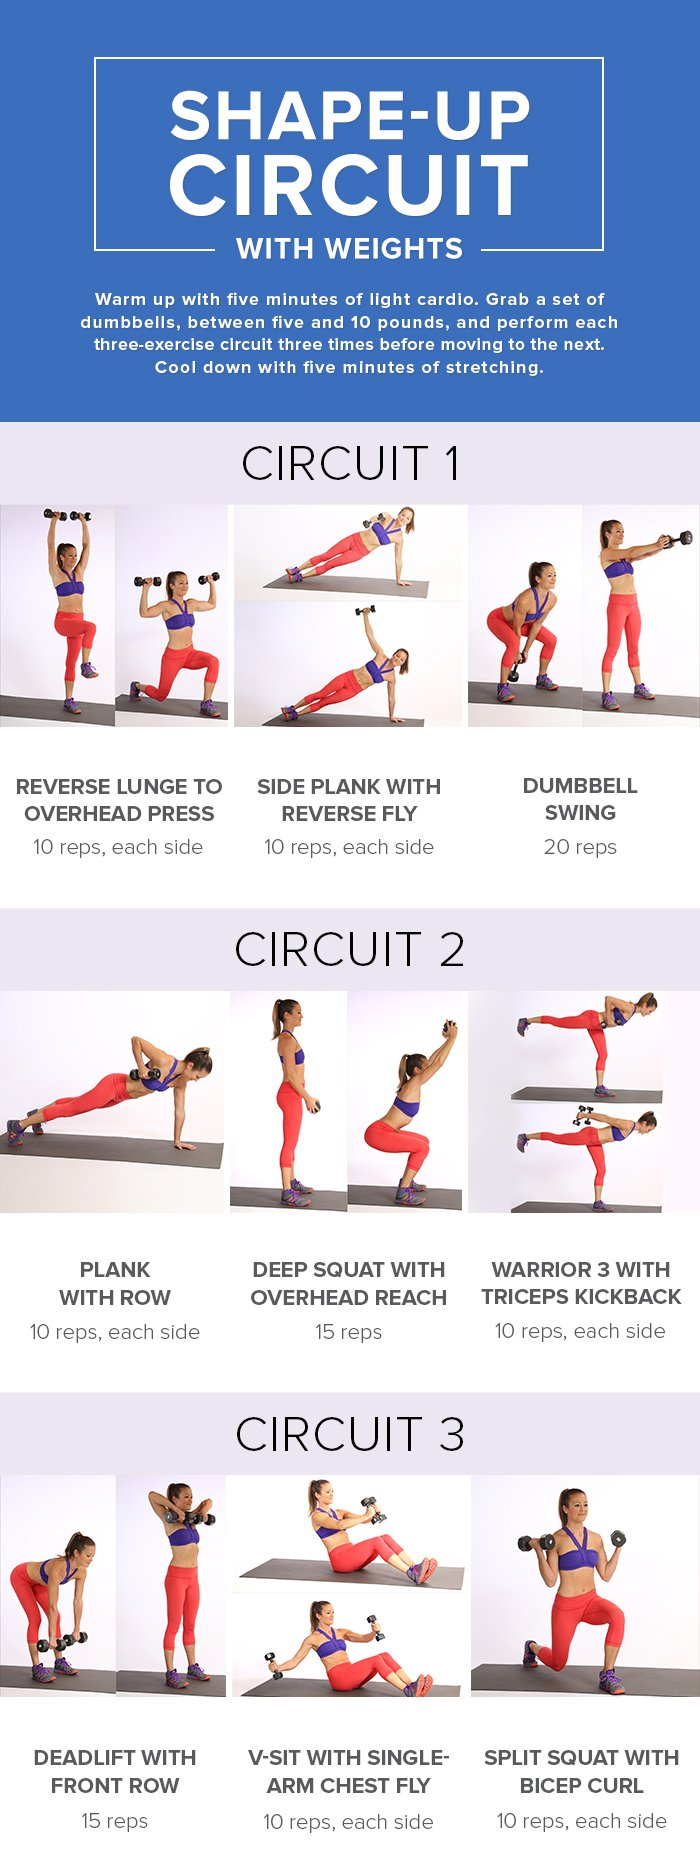 Shape-up Circuit with weights